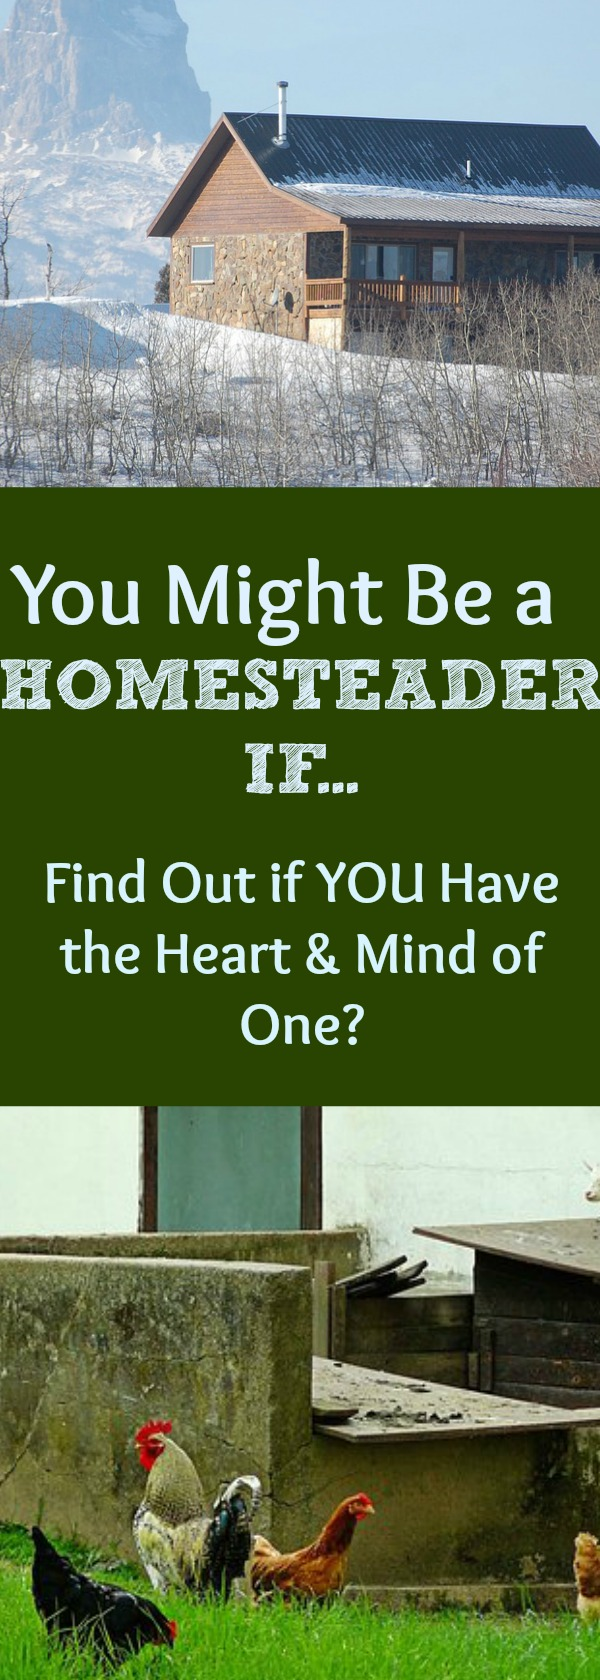 Are YOU a homesteader? Doesn't matter where you live! A homesteader is a person with a special mind and heart.  See if you have what it takes and if YOU think like a homesteader!